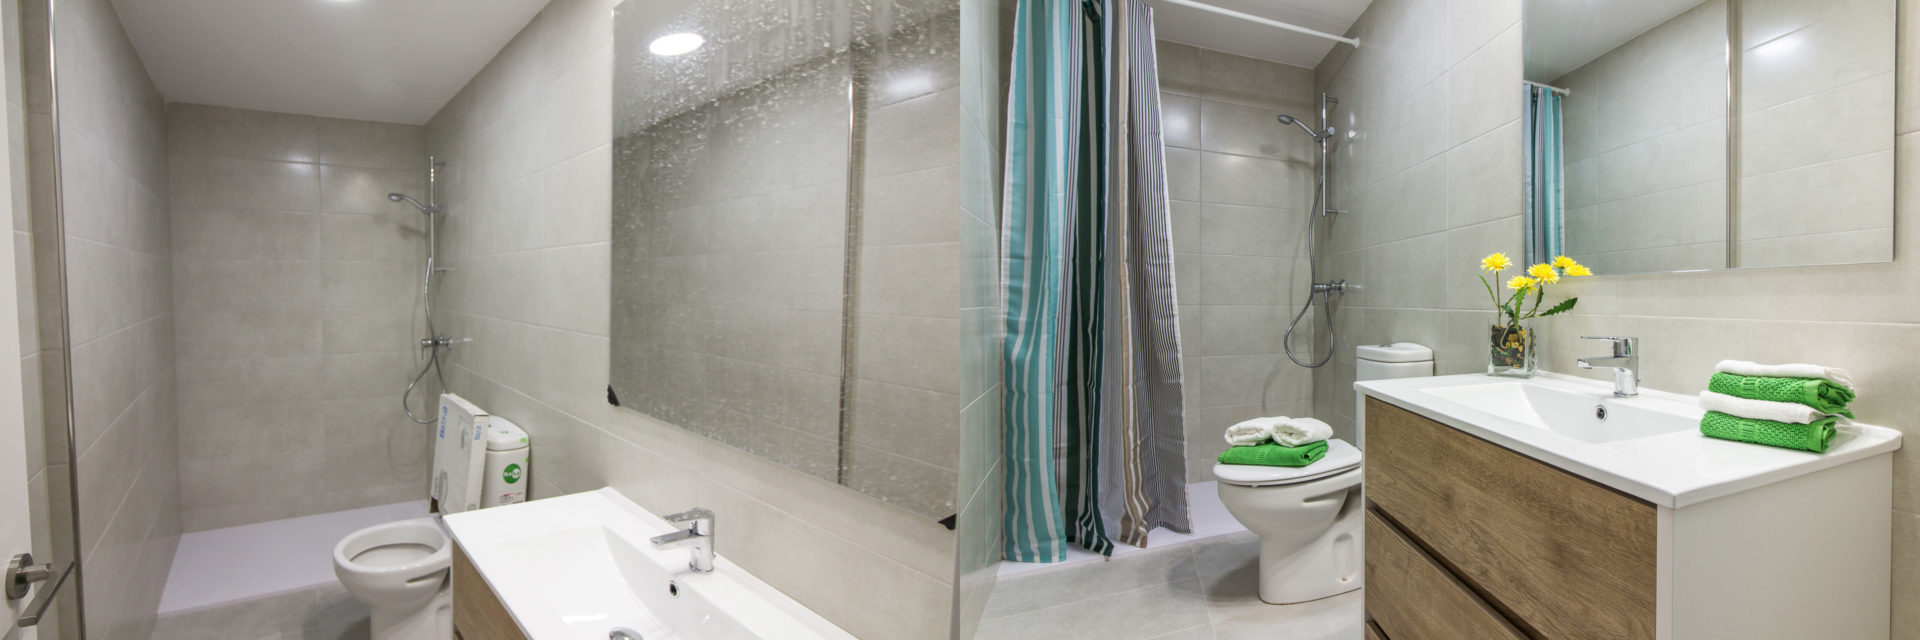 home staging raval baño foto antes despues